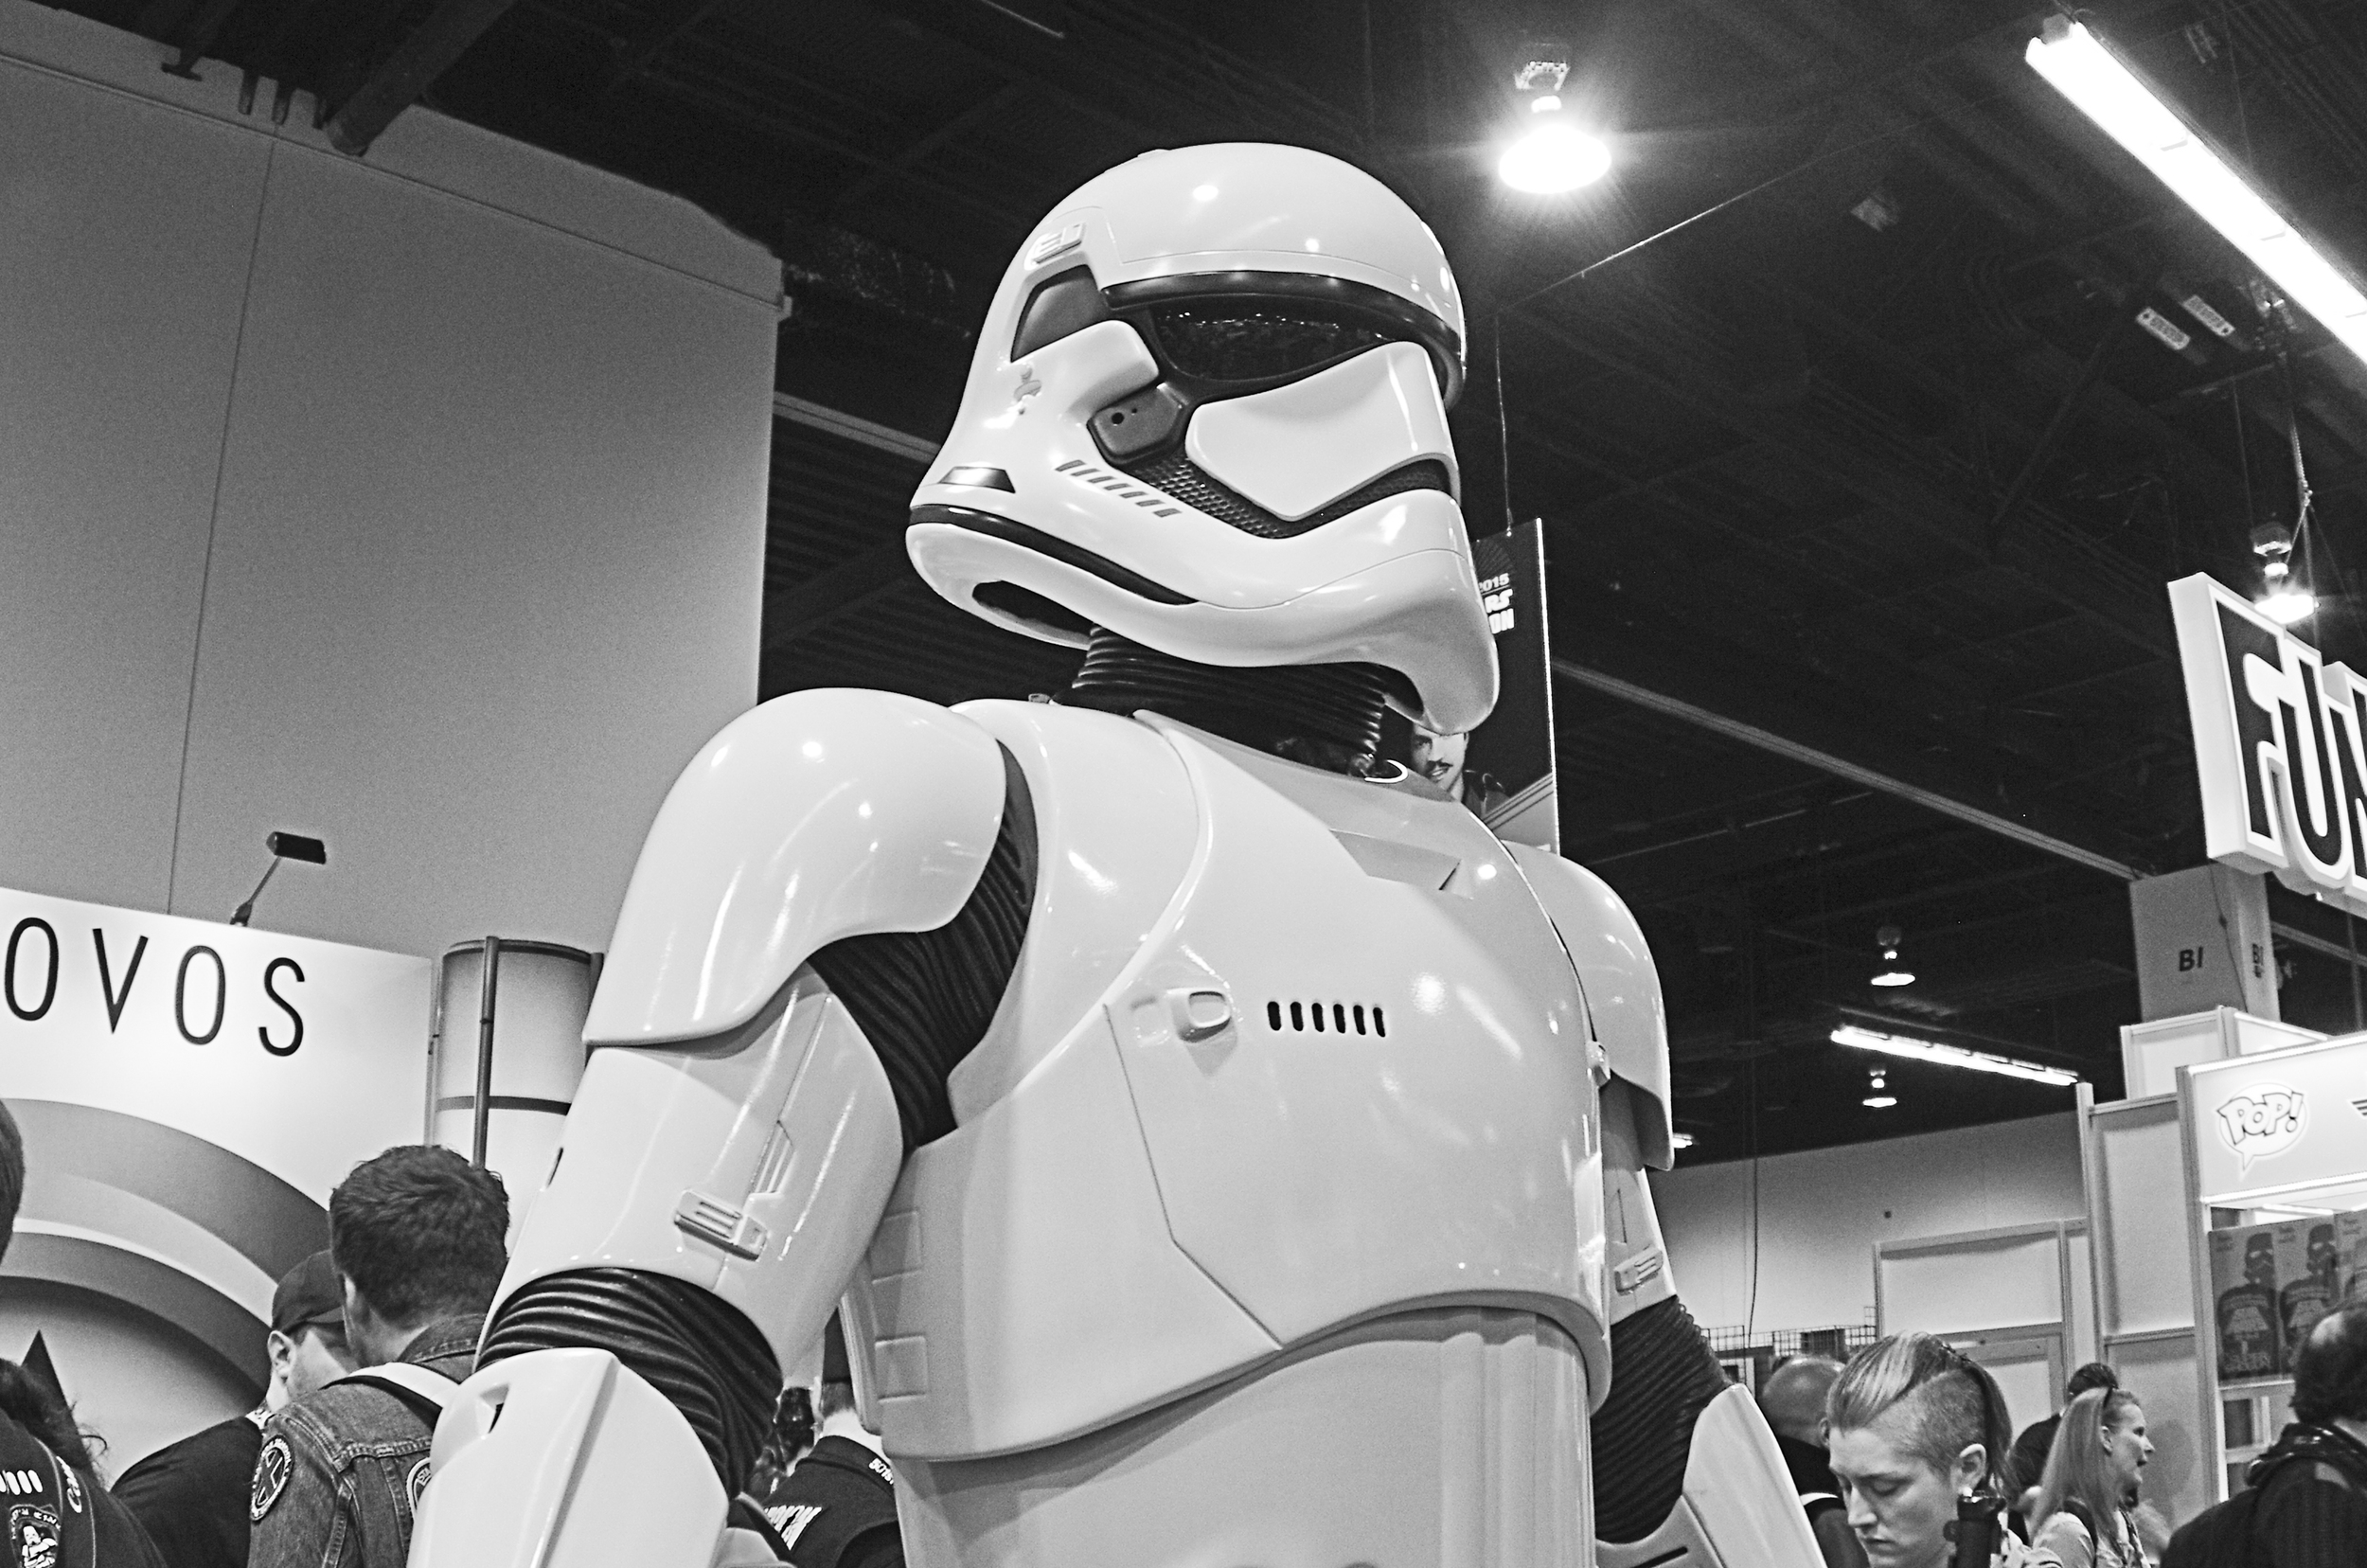 The First Order stormtroopers were awesome to check out in person.